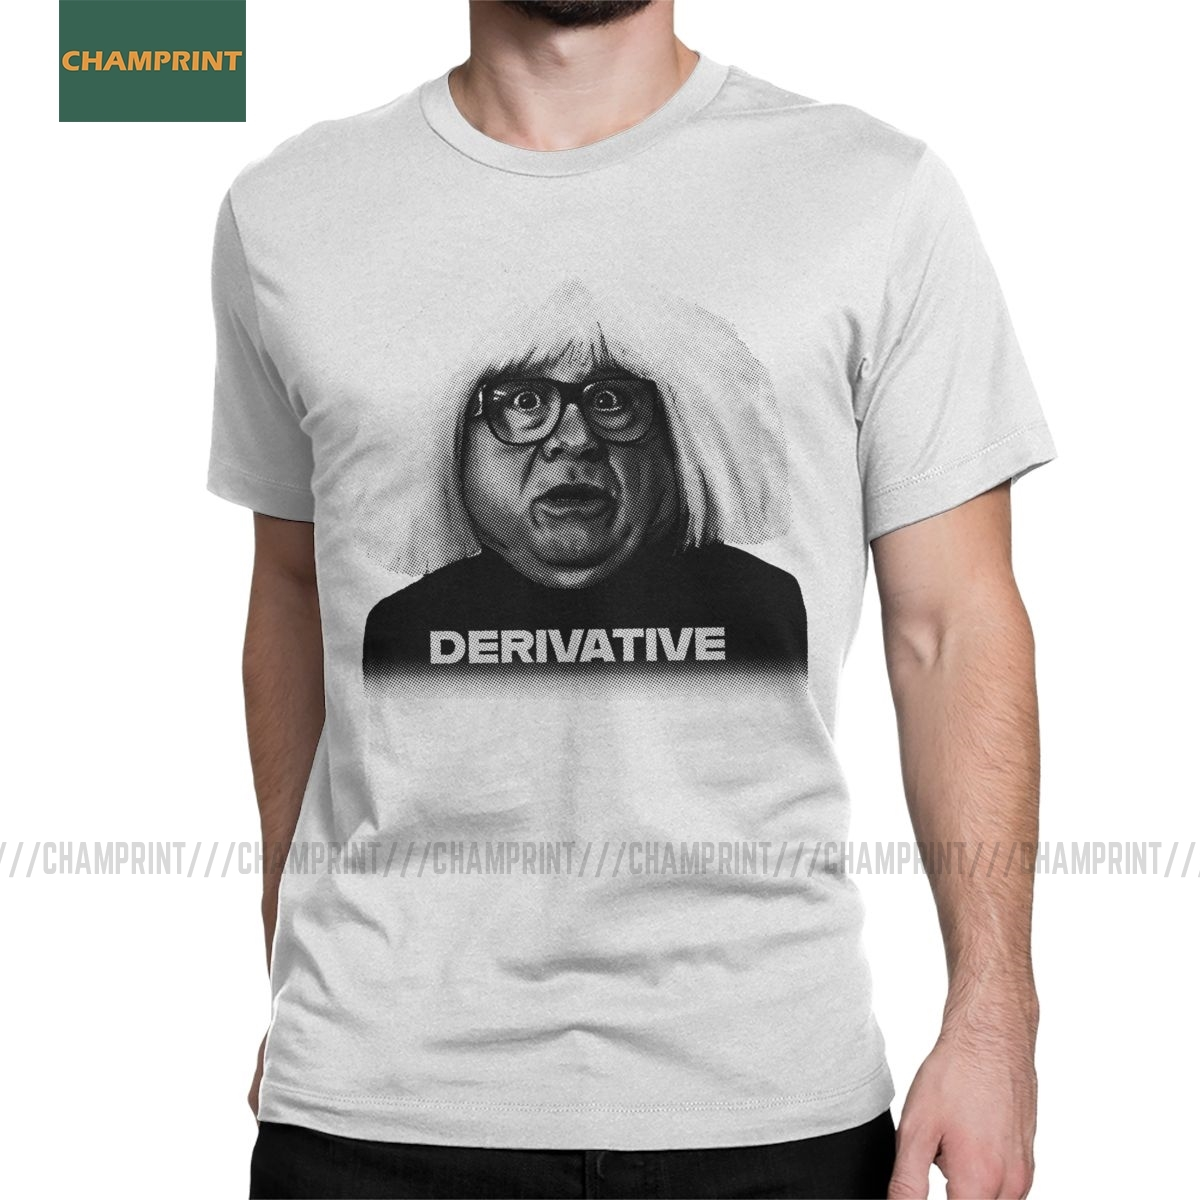 Ongo Gablogian Derivative It's Always Sunny In Philadelphia T-Shirt Men Danny DeVito Nightman Cotton Tees Short Sleeve T Shirts